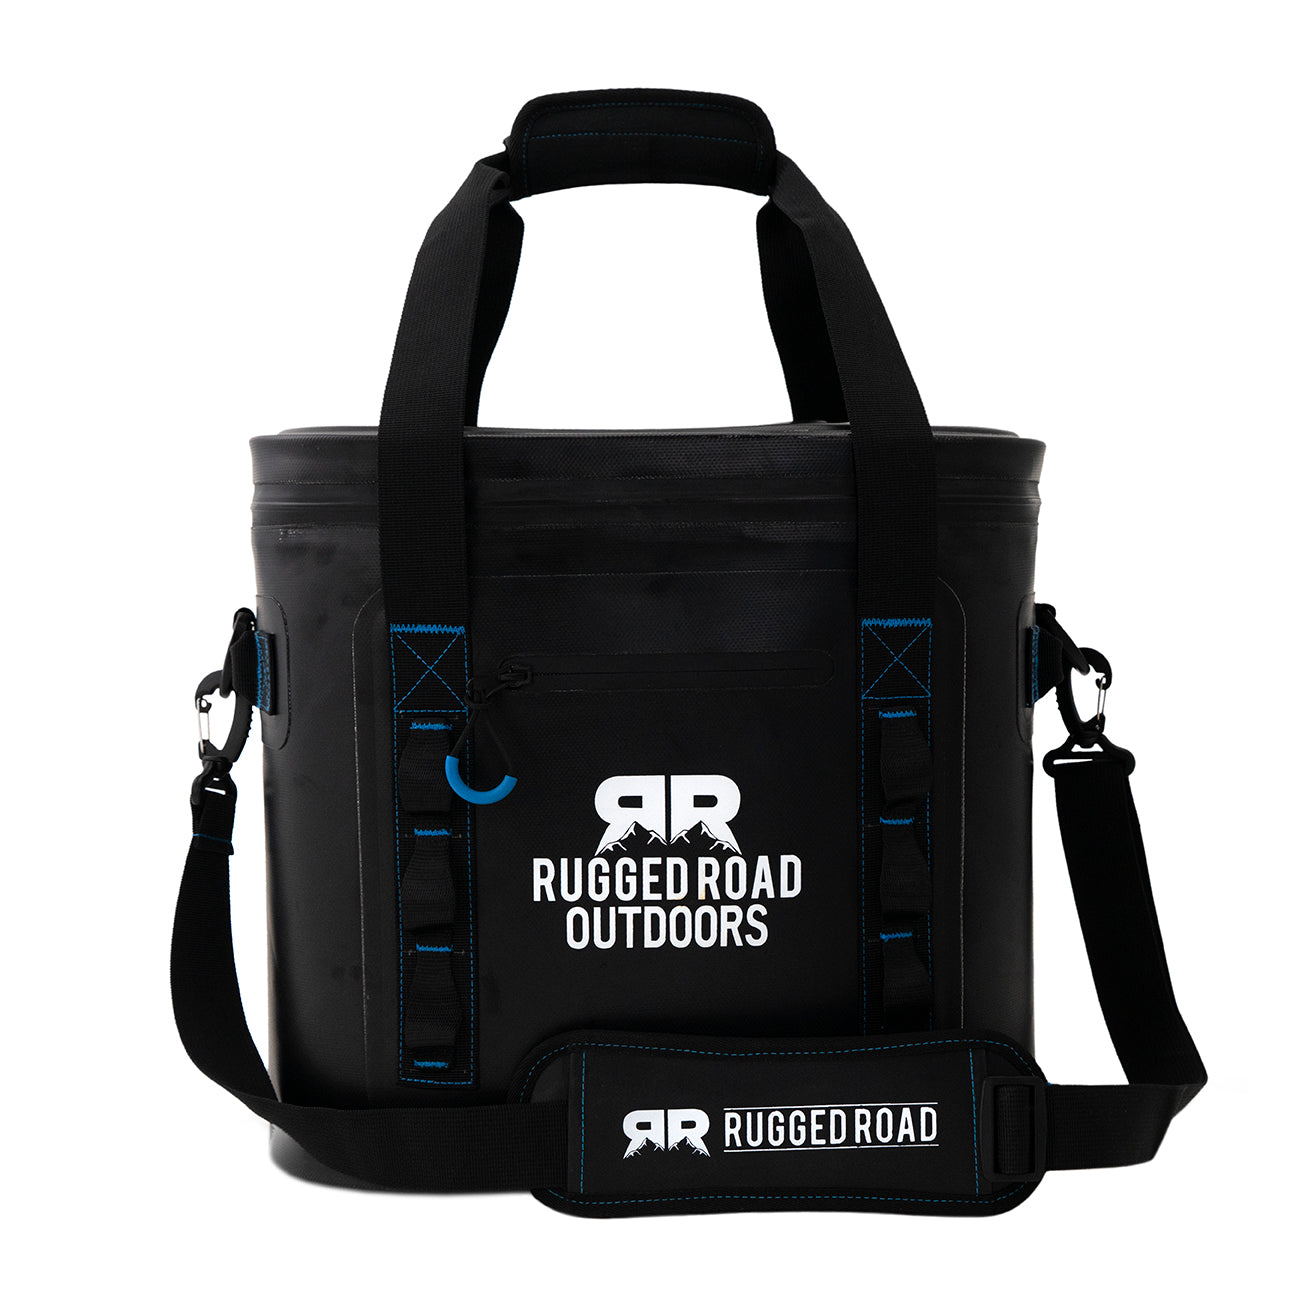 The Rugged Road 30 Can Soft Cooler